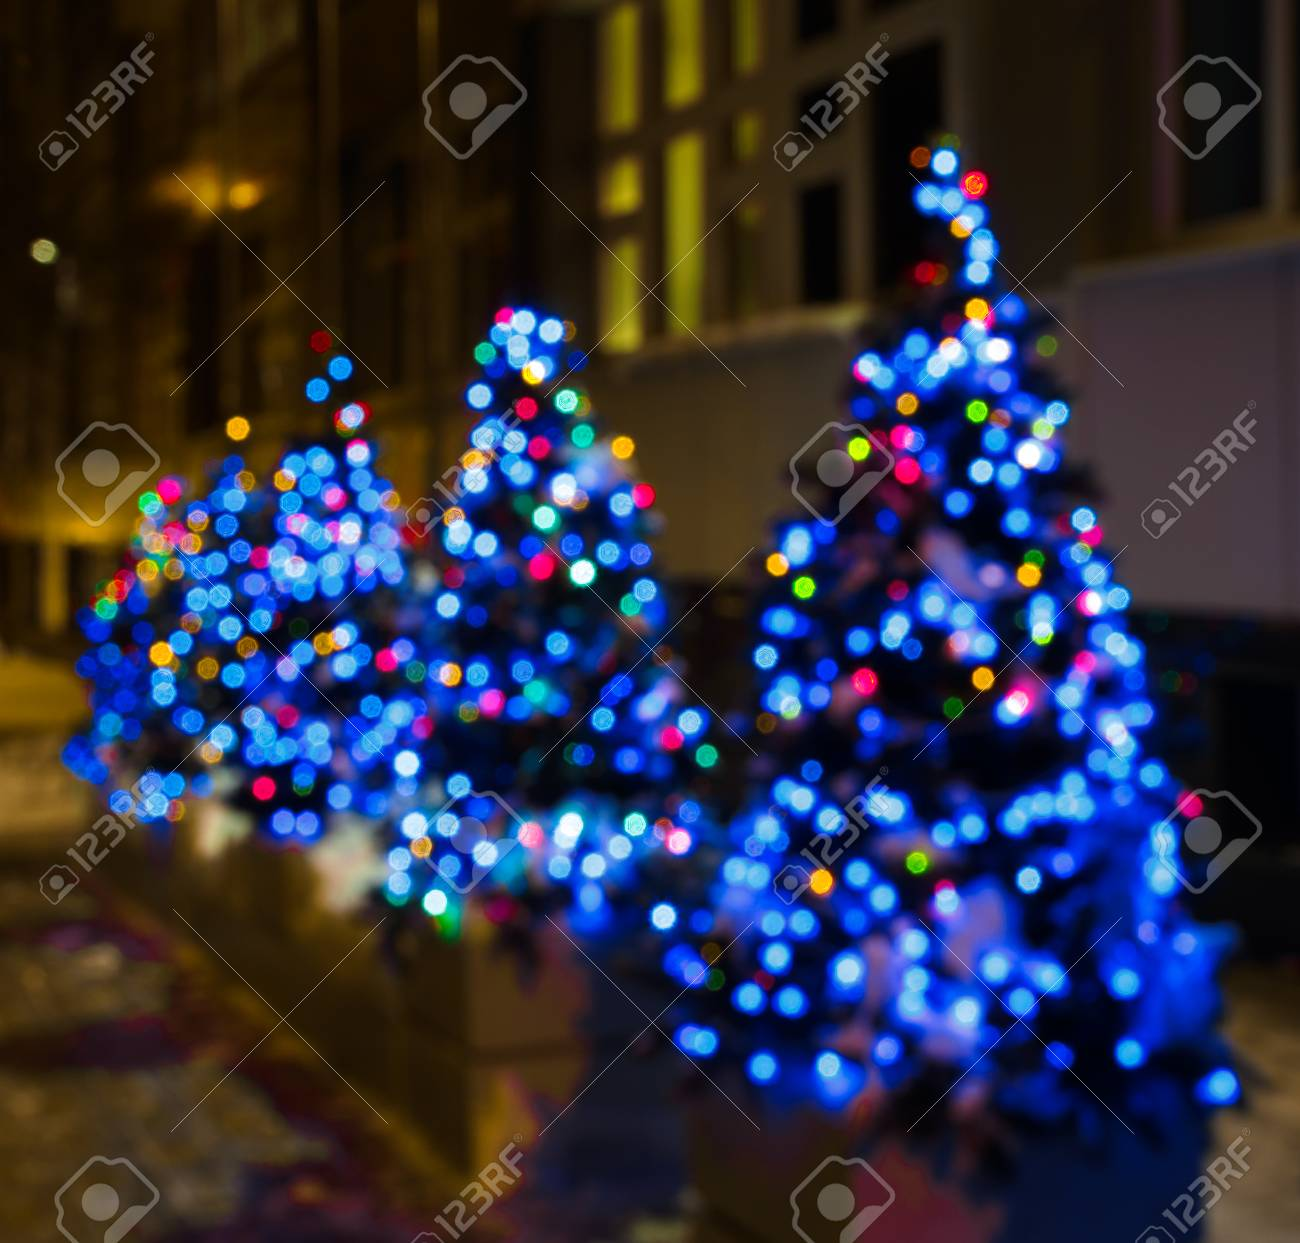 Decorated Christmas Trees With Blue Red Lights Stock Photo Picture And Royalty Free Image Image 89310704